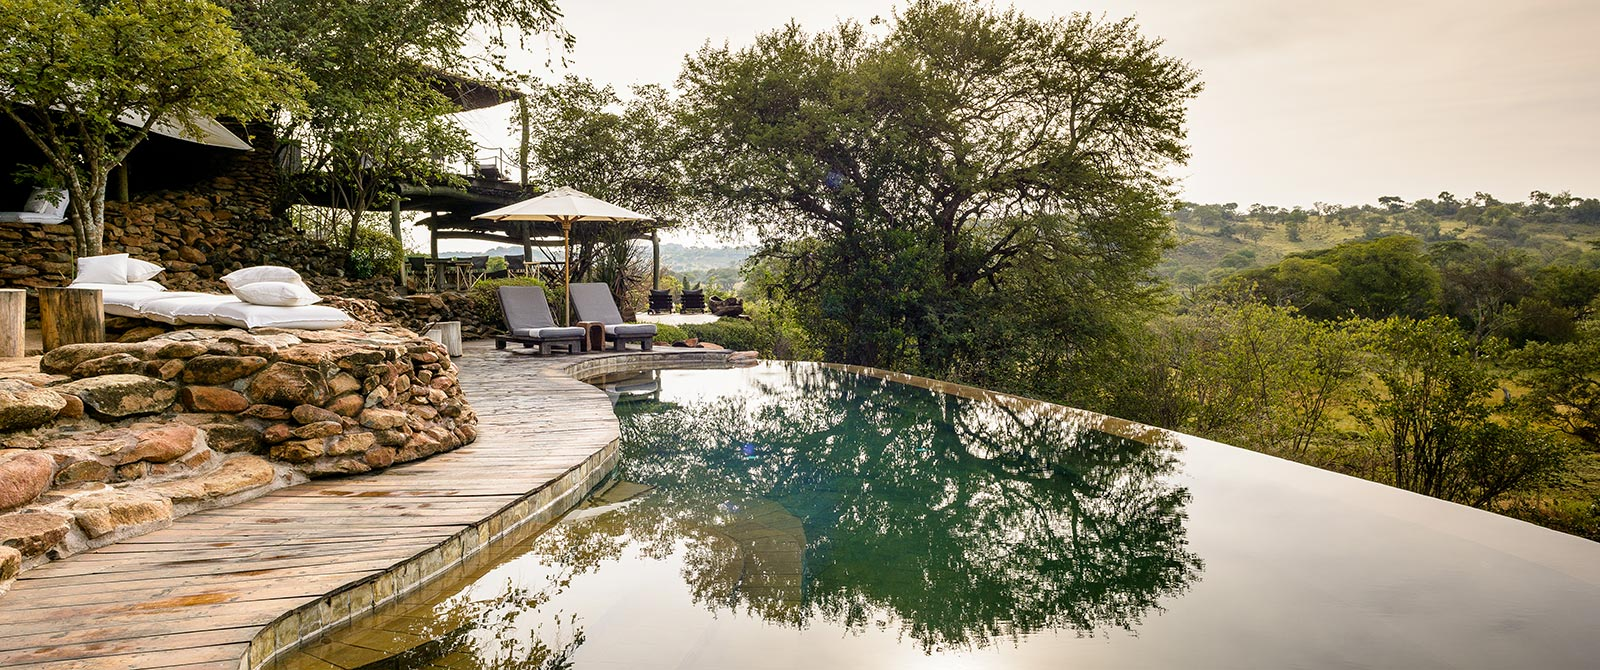 Singita Faru Faru Lodge - Serengeti Migration Safaris - East African Safari: Kenya and Tanzania Luxury Tour